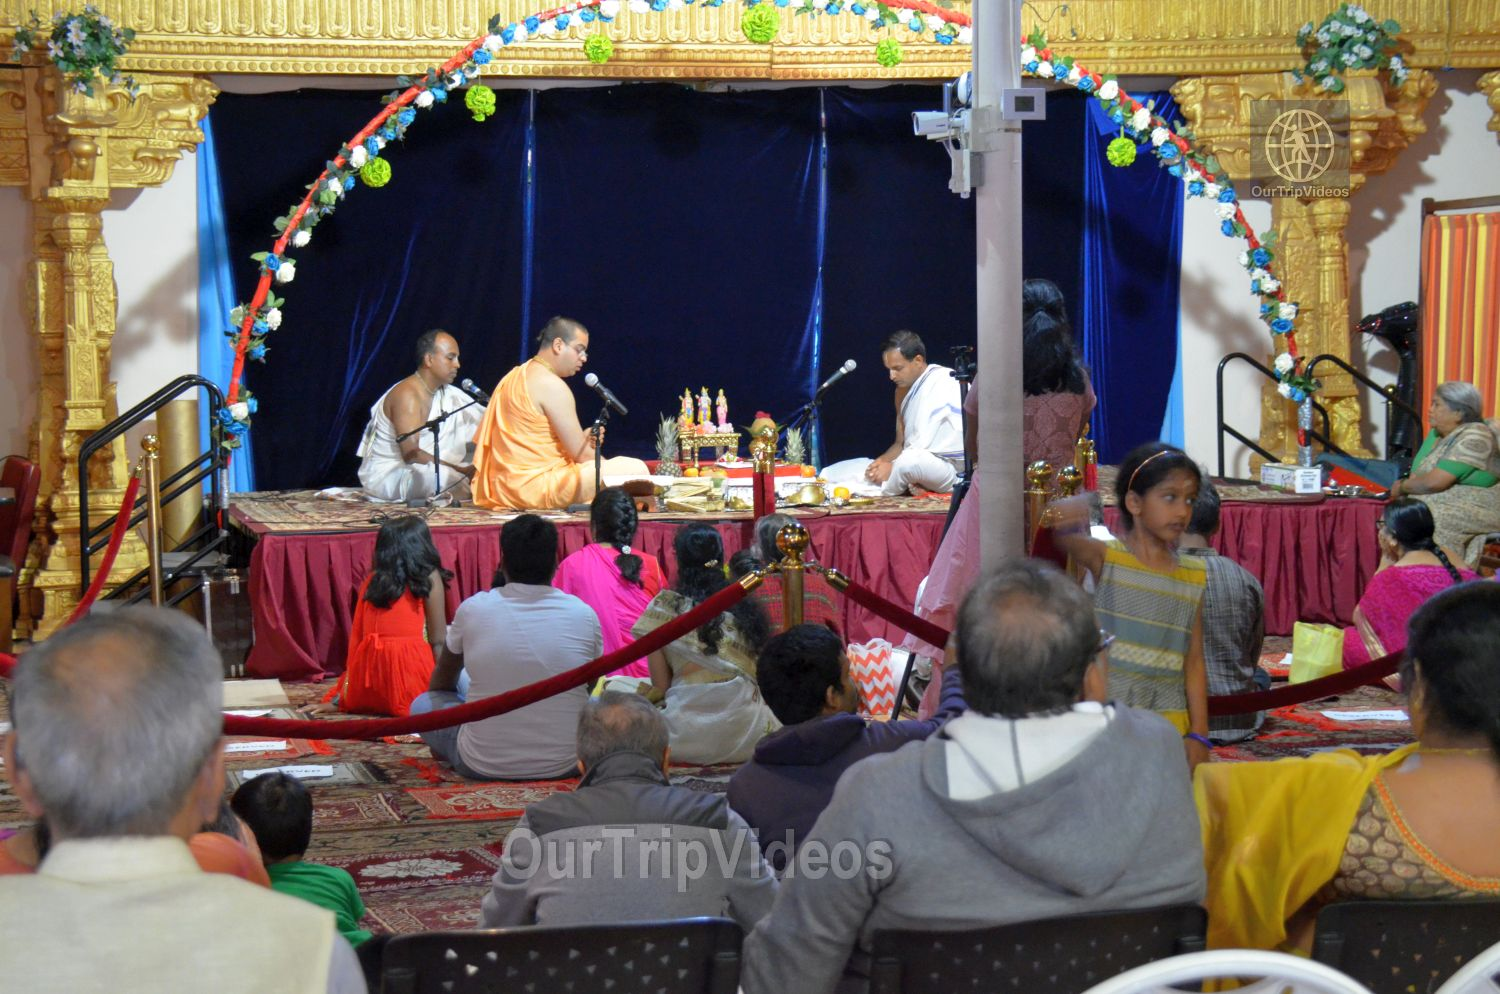 Diwali and Govardhan Puja Celebrations at KBMandir, Sunnyvale, CA, USA - Picture 1 of 25